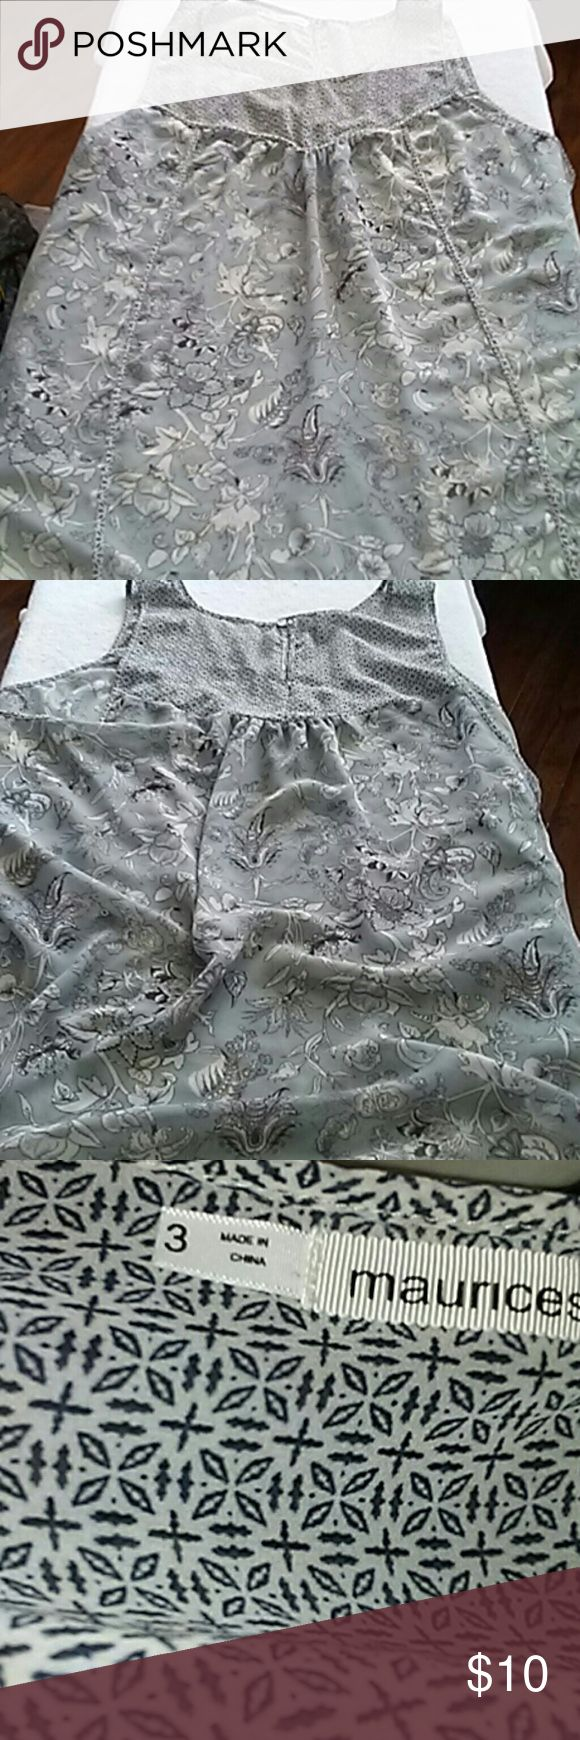 """MAURICES PLUS SIZE SHEER SLEEVELESS BLOUSE!!!! Beautiful gently used sheer sleeveless blouse from MAURICES!!!!  This ?? % polyester blouse is ready for super cool casual or can be dressed up!!!  Cool and comfy with an array of colors that can match Grey black white or even a light blue!!!  Measurements--  armpit to armpit is 19"""" approx 33""""long!!!!!  Any questions feel free to ask! I LOVE ANY OFFER OR BUNDLE DON'T HESITATE TO ASK!!! Maurices Tops Blouses"""